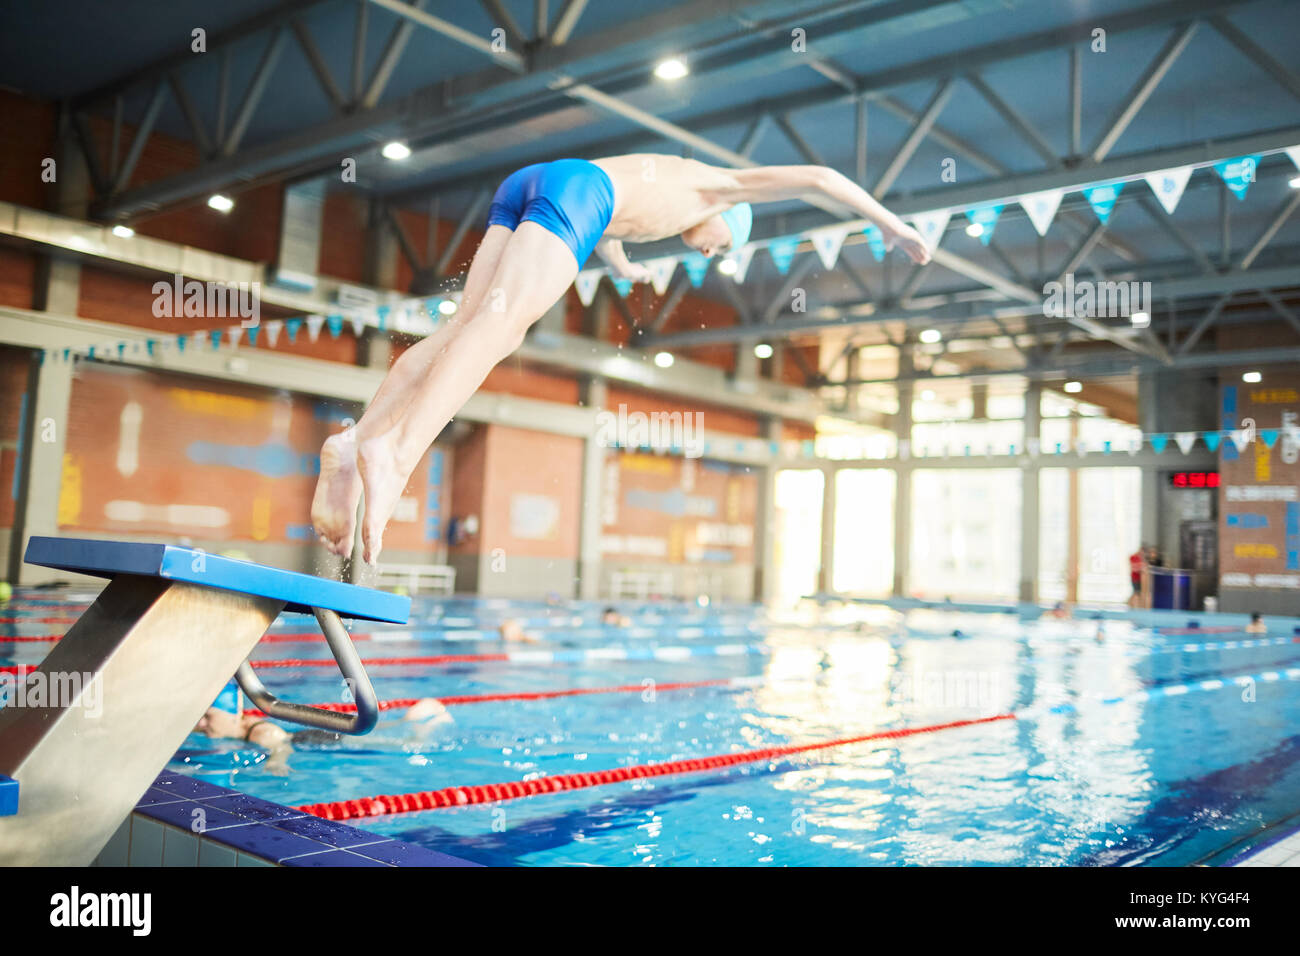 Indoor swimming pool with diving board stock photos - Swimming pool diving board regulations ...